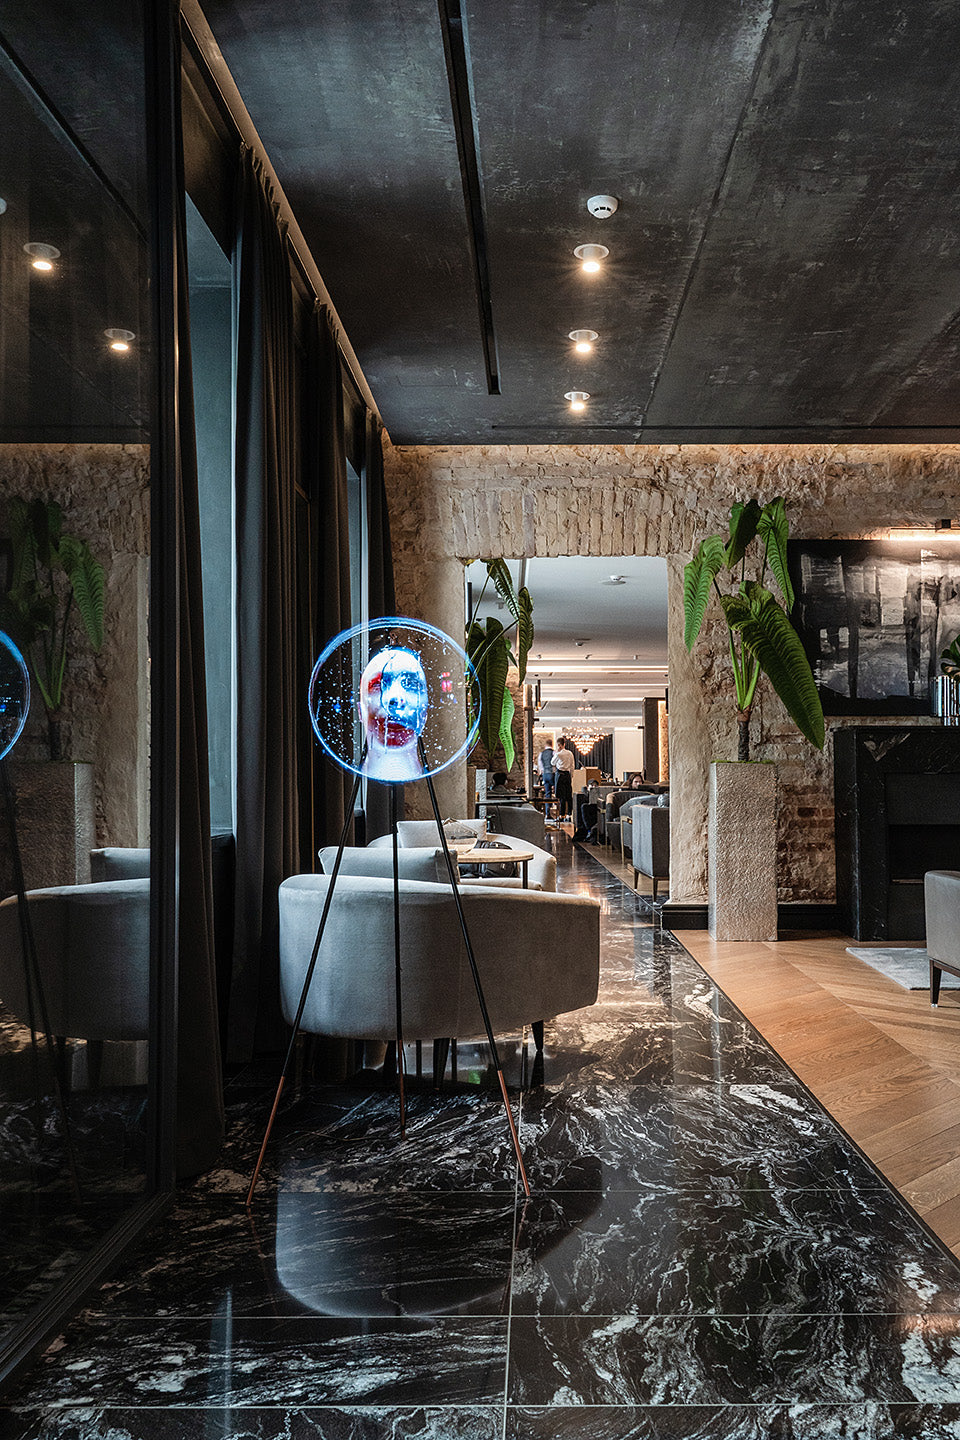 supastar-supastarstore-innovations-hologram-pacai-hotel-design-hotels